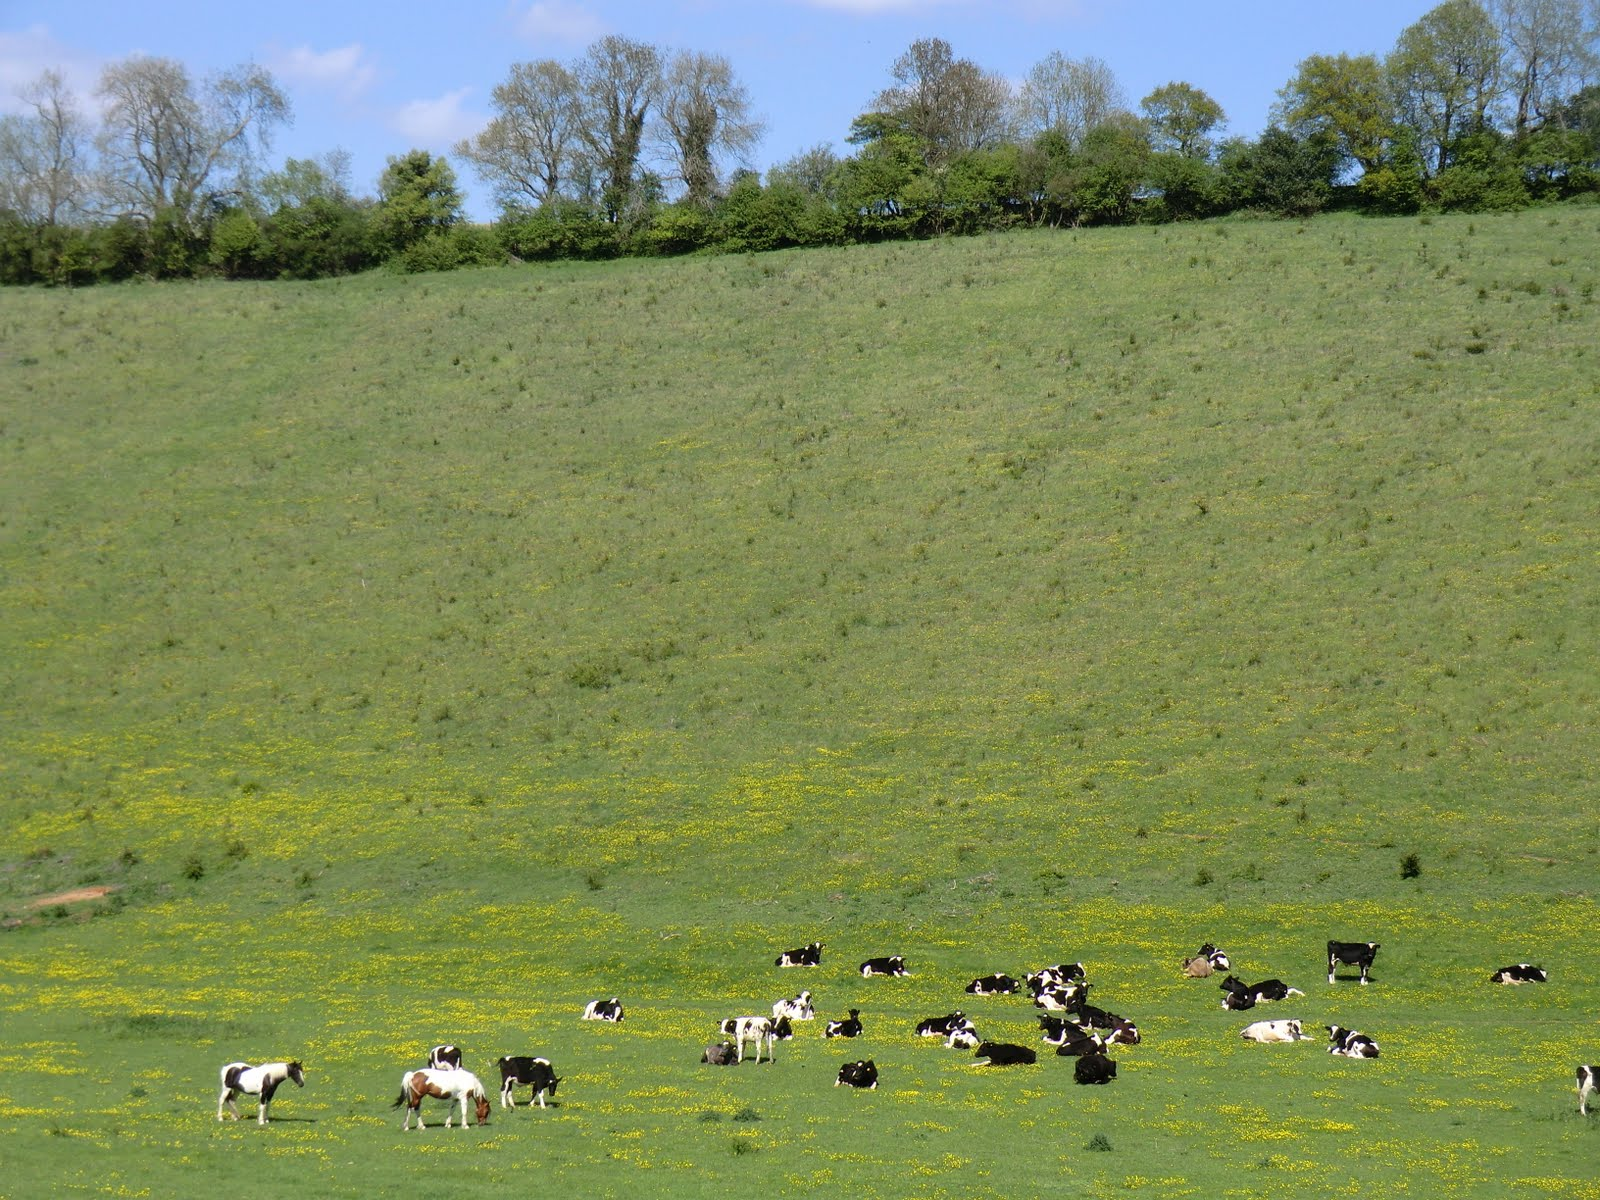 CIMG8164 Horses, cows and buttercups